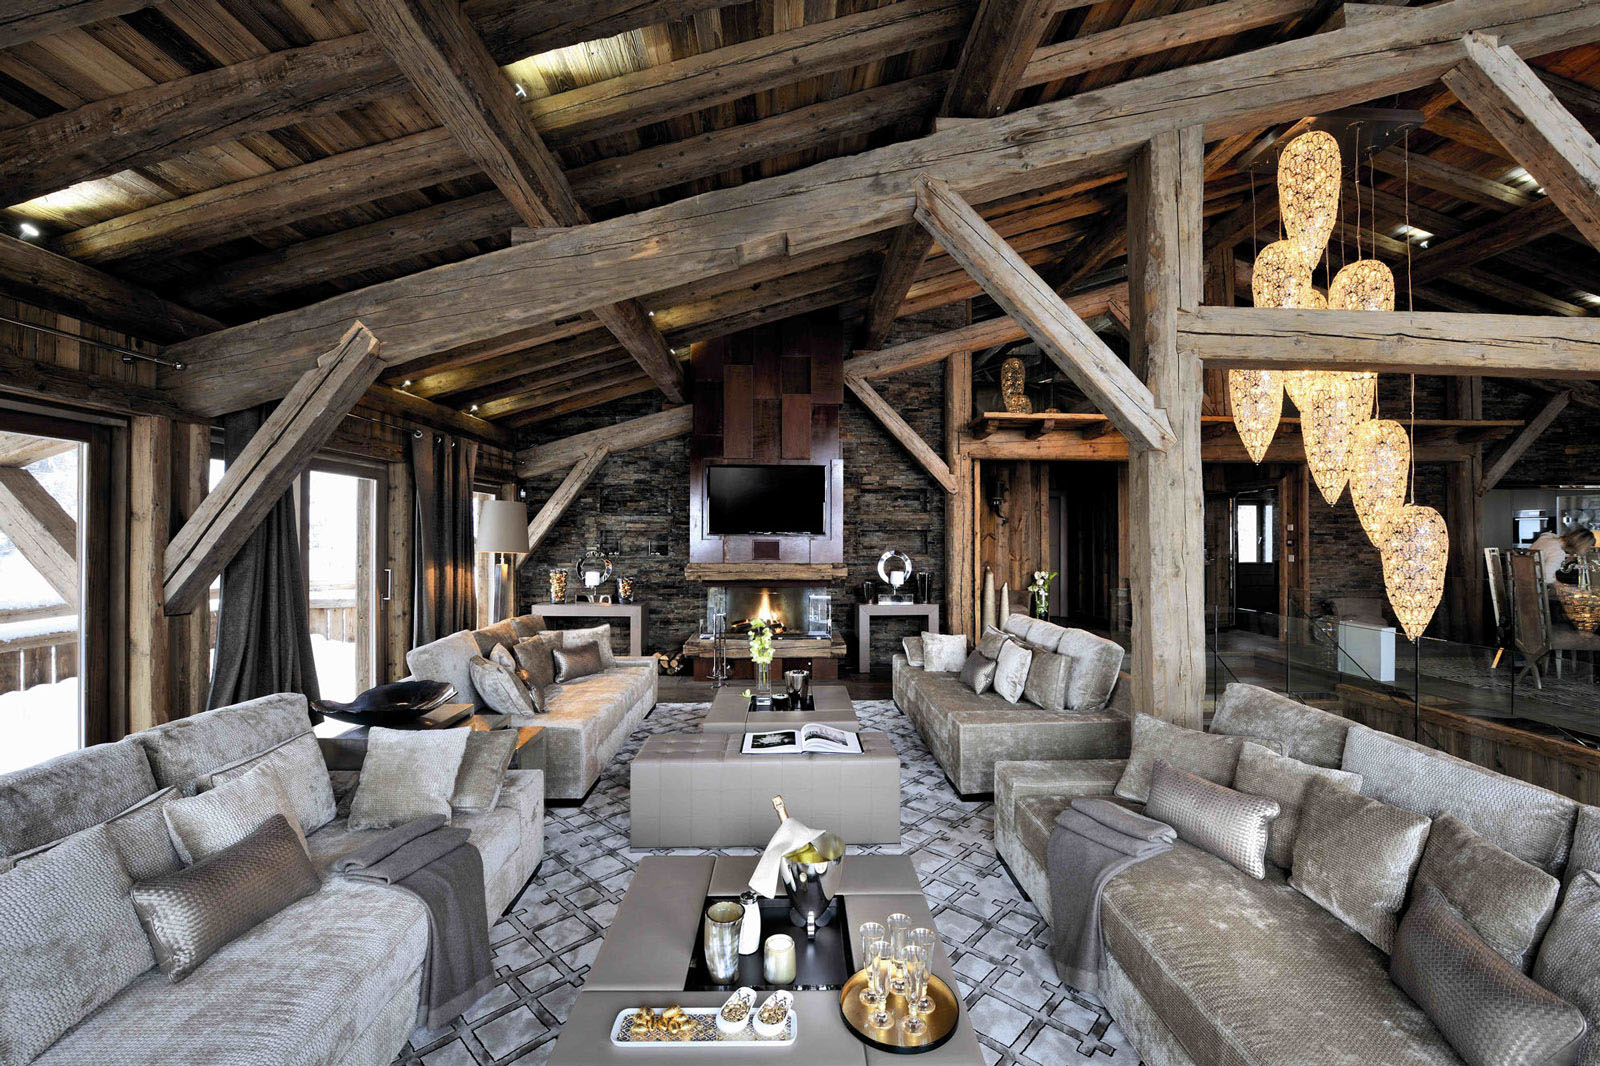 Chic Modern Rustic Chalet In The Rh Ne Alpes Idesignarch Interior Design Architecture: rustic home architecture